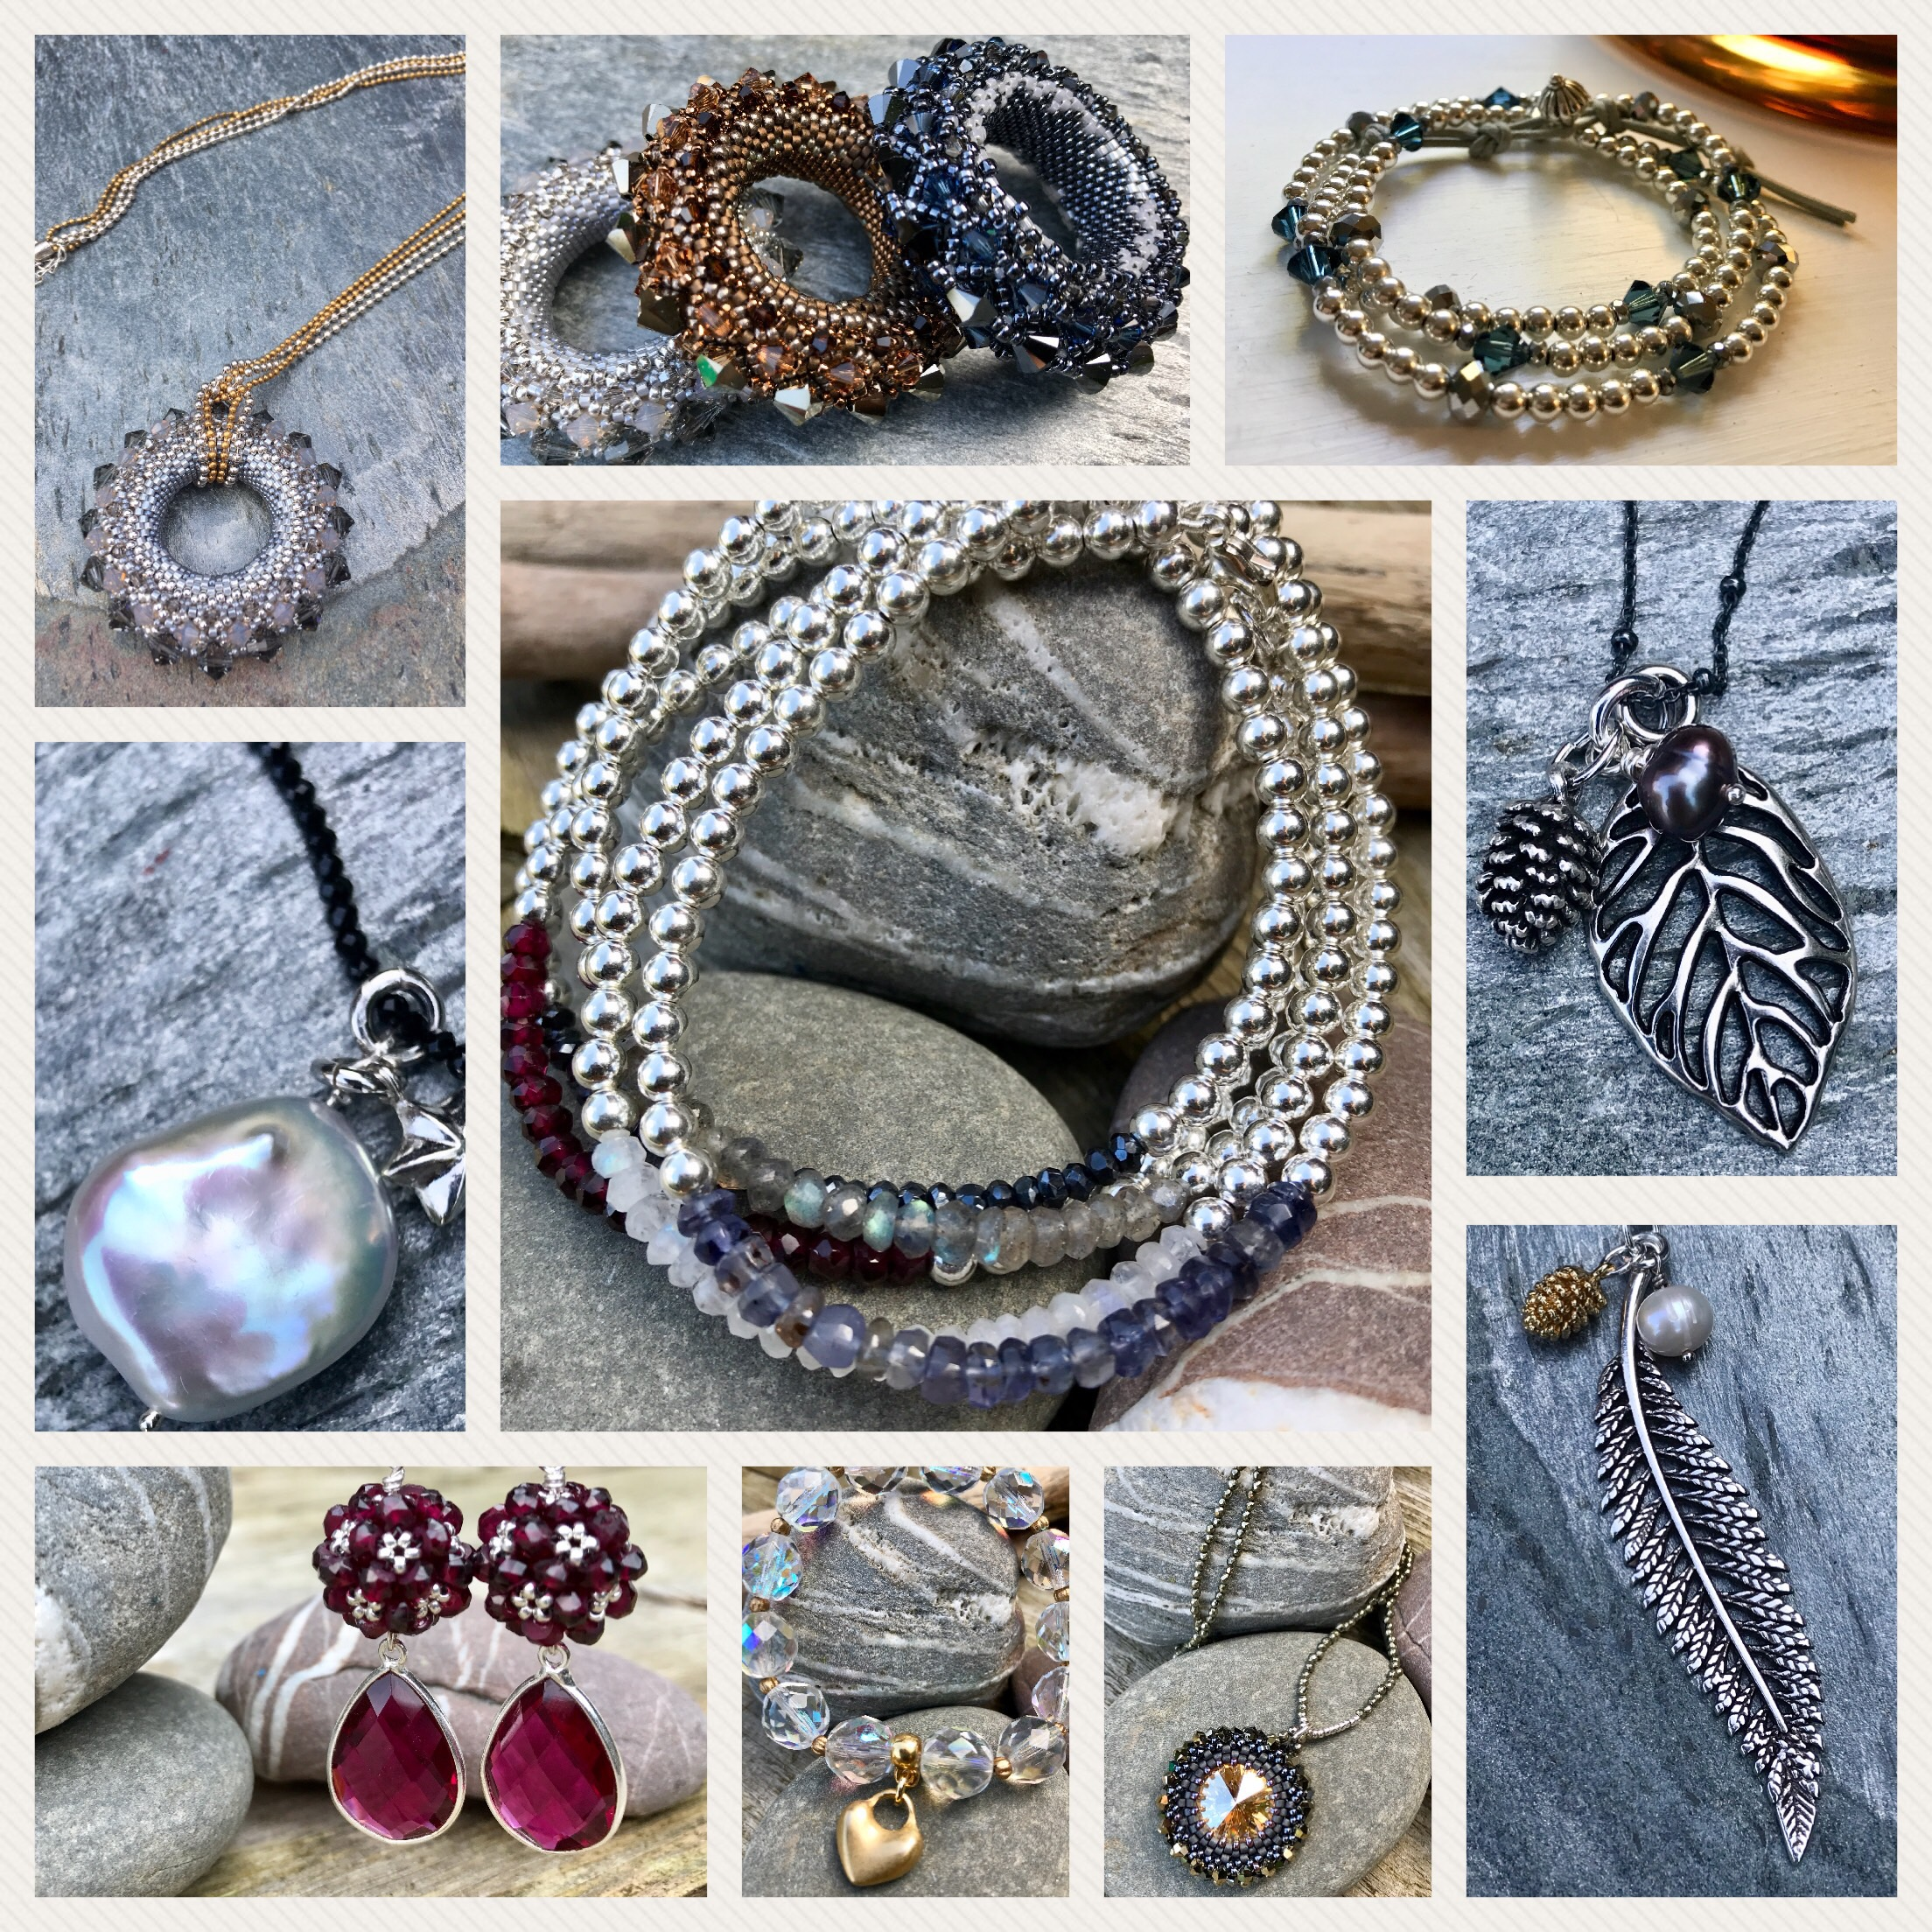 Bead and Stone Jewellery